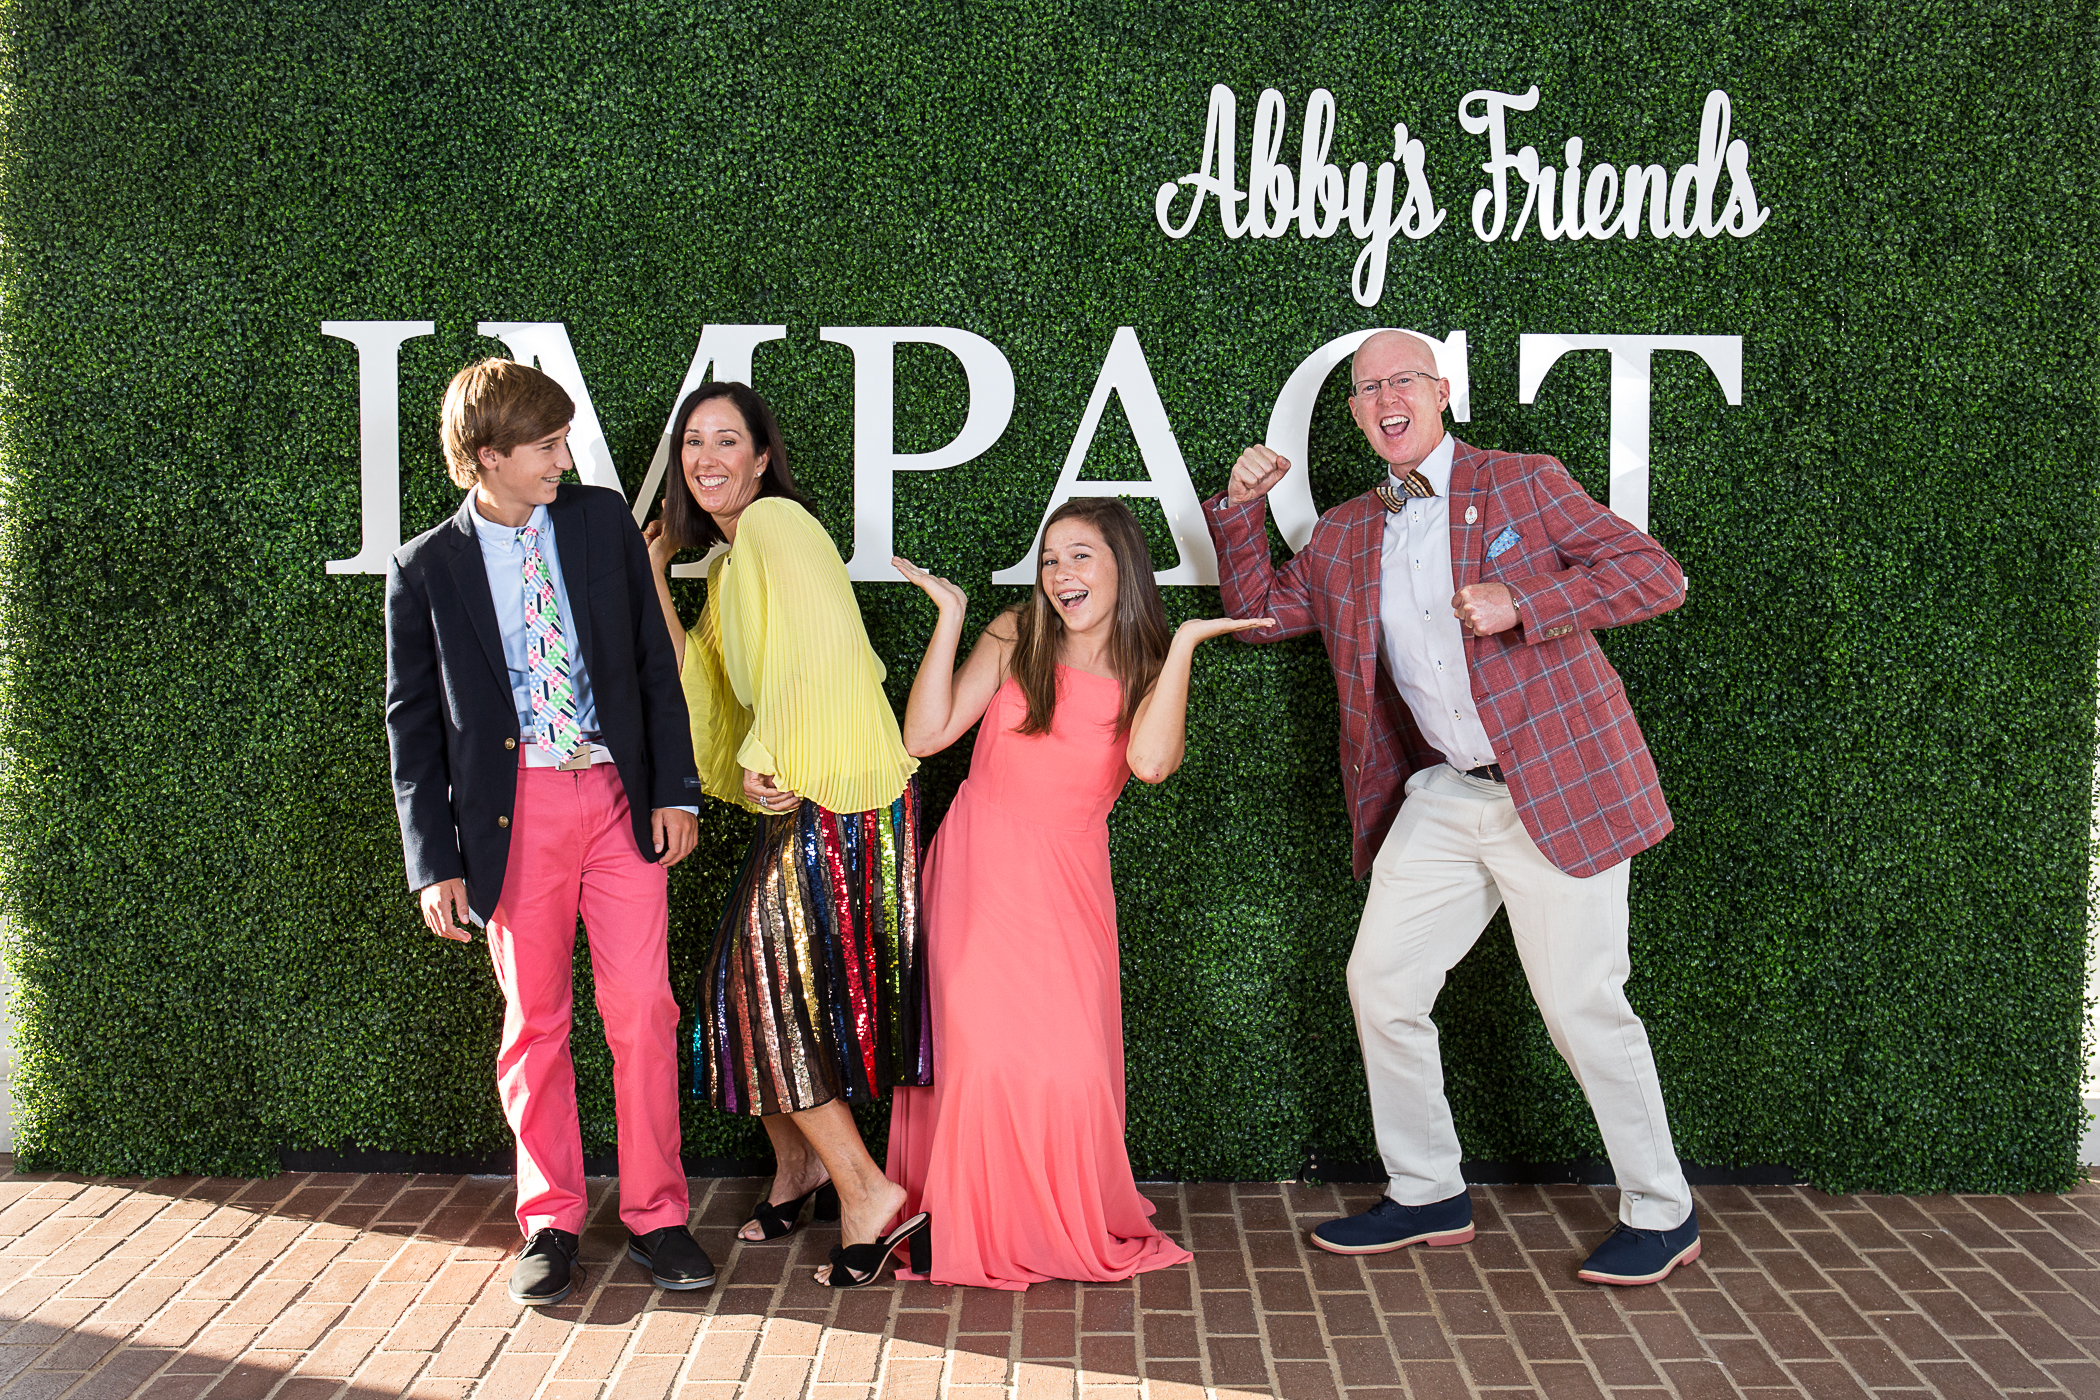 "A family affair! The Sutterlin family from left to right: JD Sutterlin, Kendell Sutterlin, Abby Sutterlin and John Sutterlin. The ""Abby's Friends"" Charity Golf Classic and Gala is named in honor of Abby, 16, who was diagnosed with Type 1 diabetes at age 4."